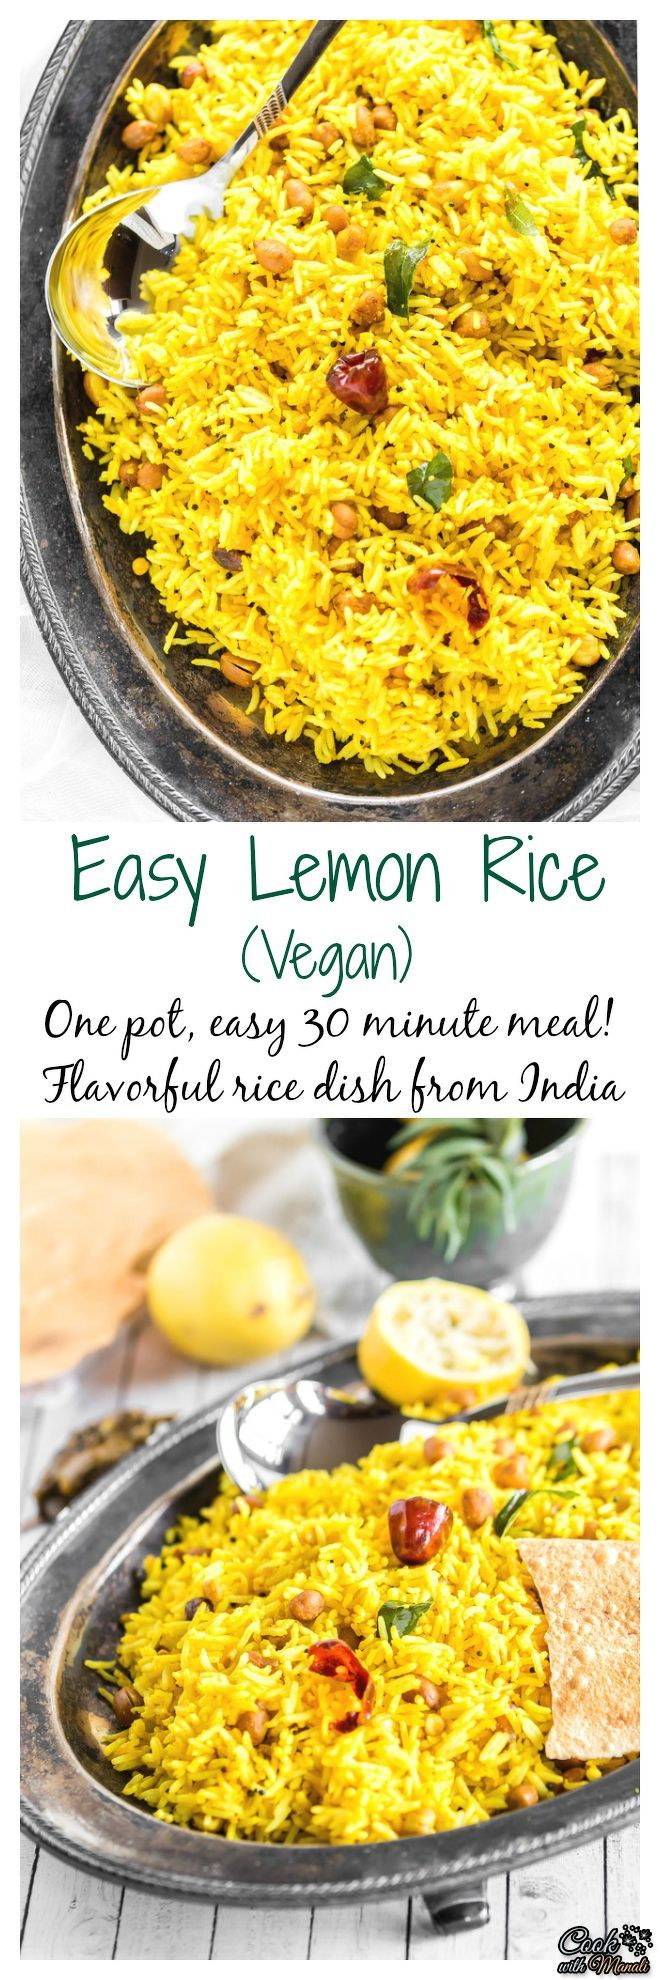 Easy one-pot meal which can be prepared in 15 minutes. This Lemon rice is easy, delicious, full of flavors and vegan!